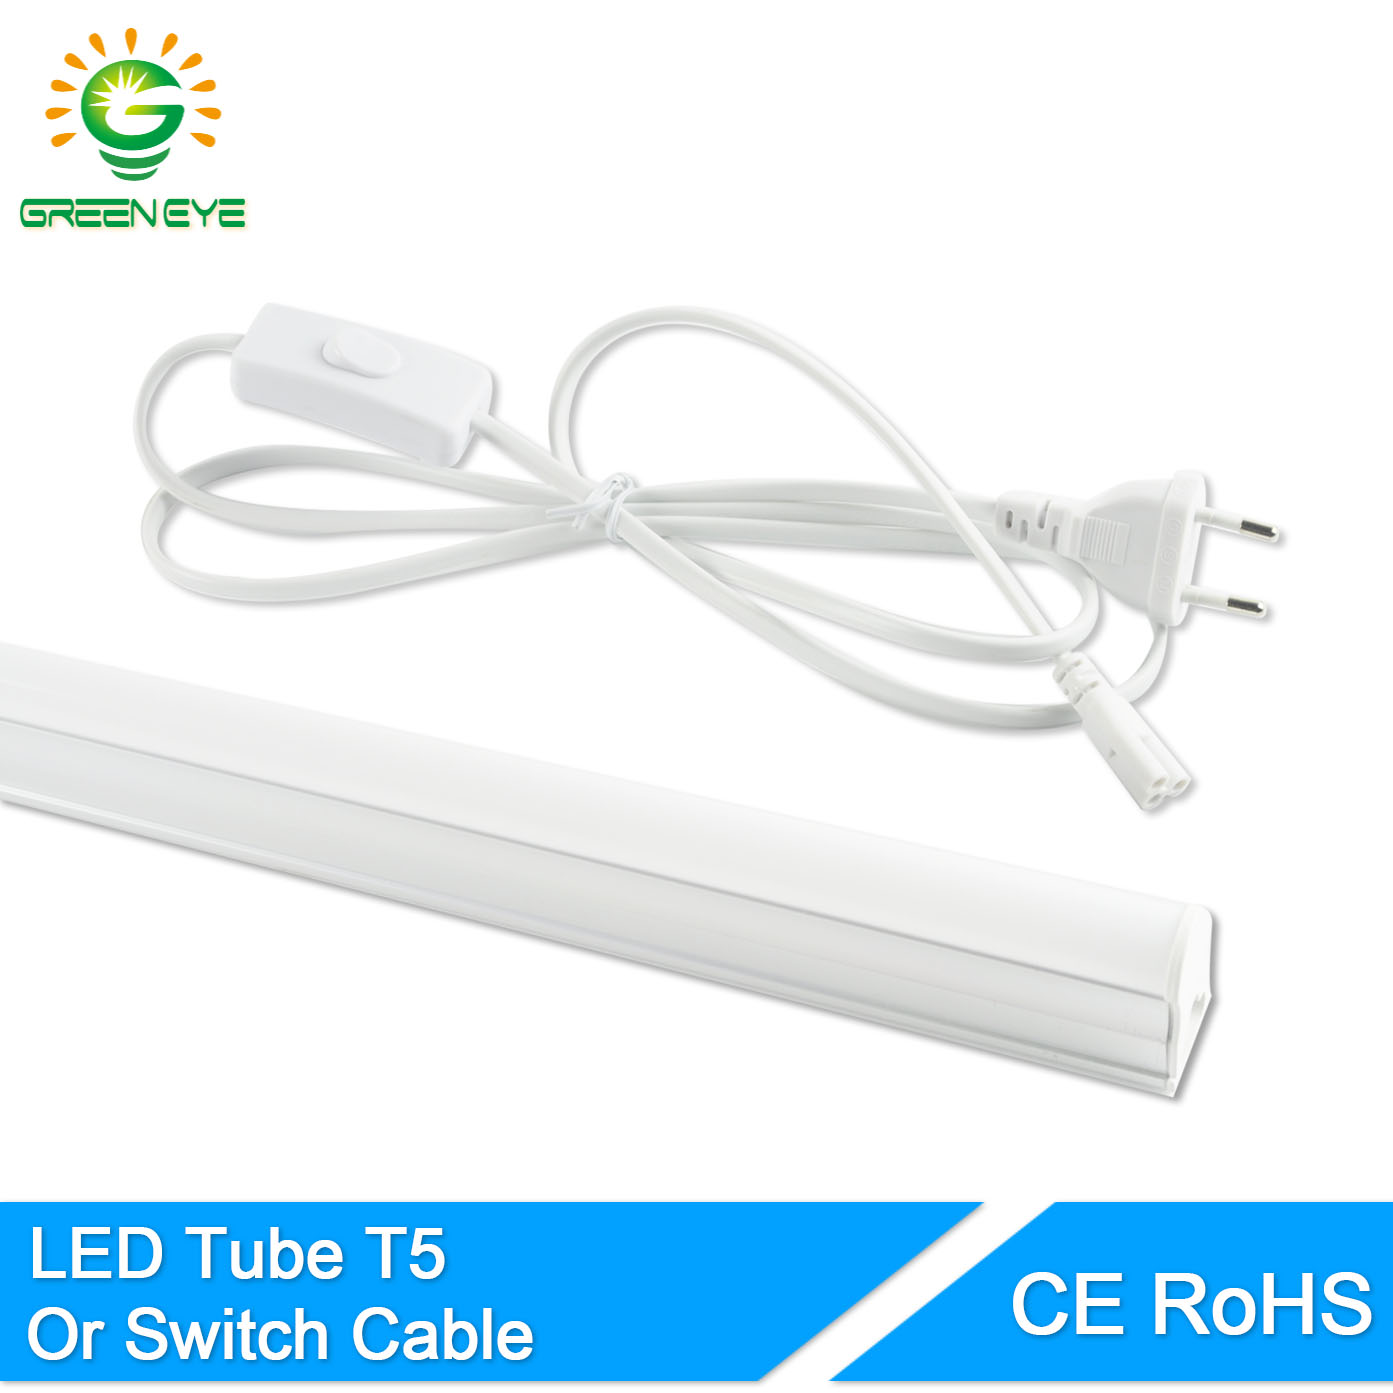 GreenEye EU Switch Cable Wire/Integrated LED Tube T5 Light 220v 240v 300mm 6w 600mm 10w Fluorescent T5 LED Lamp Cold White Warm(China (Mainland))